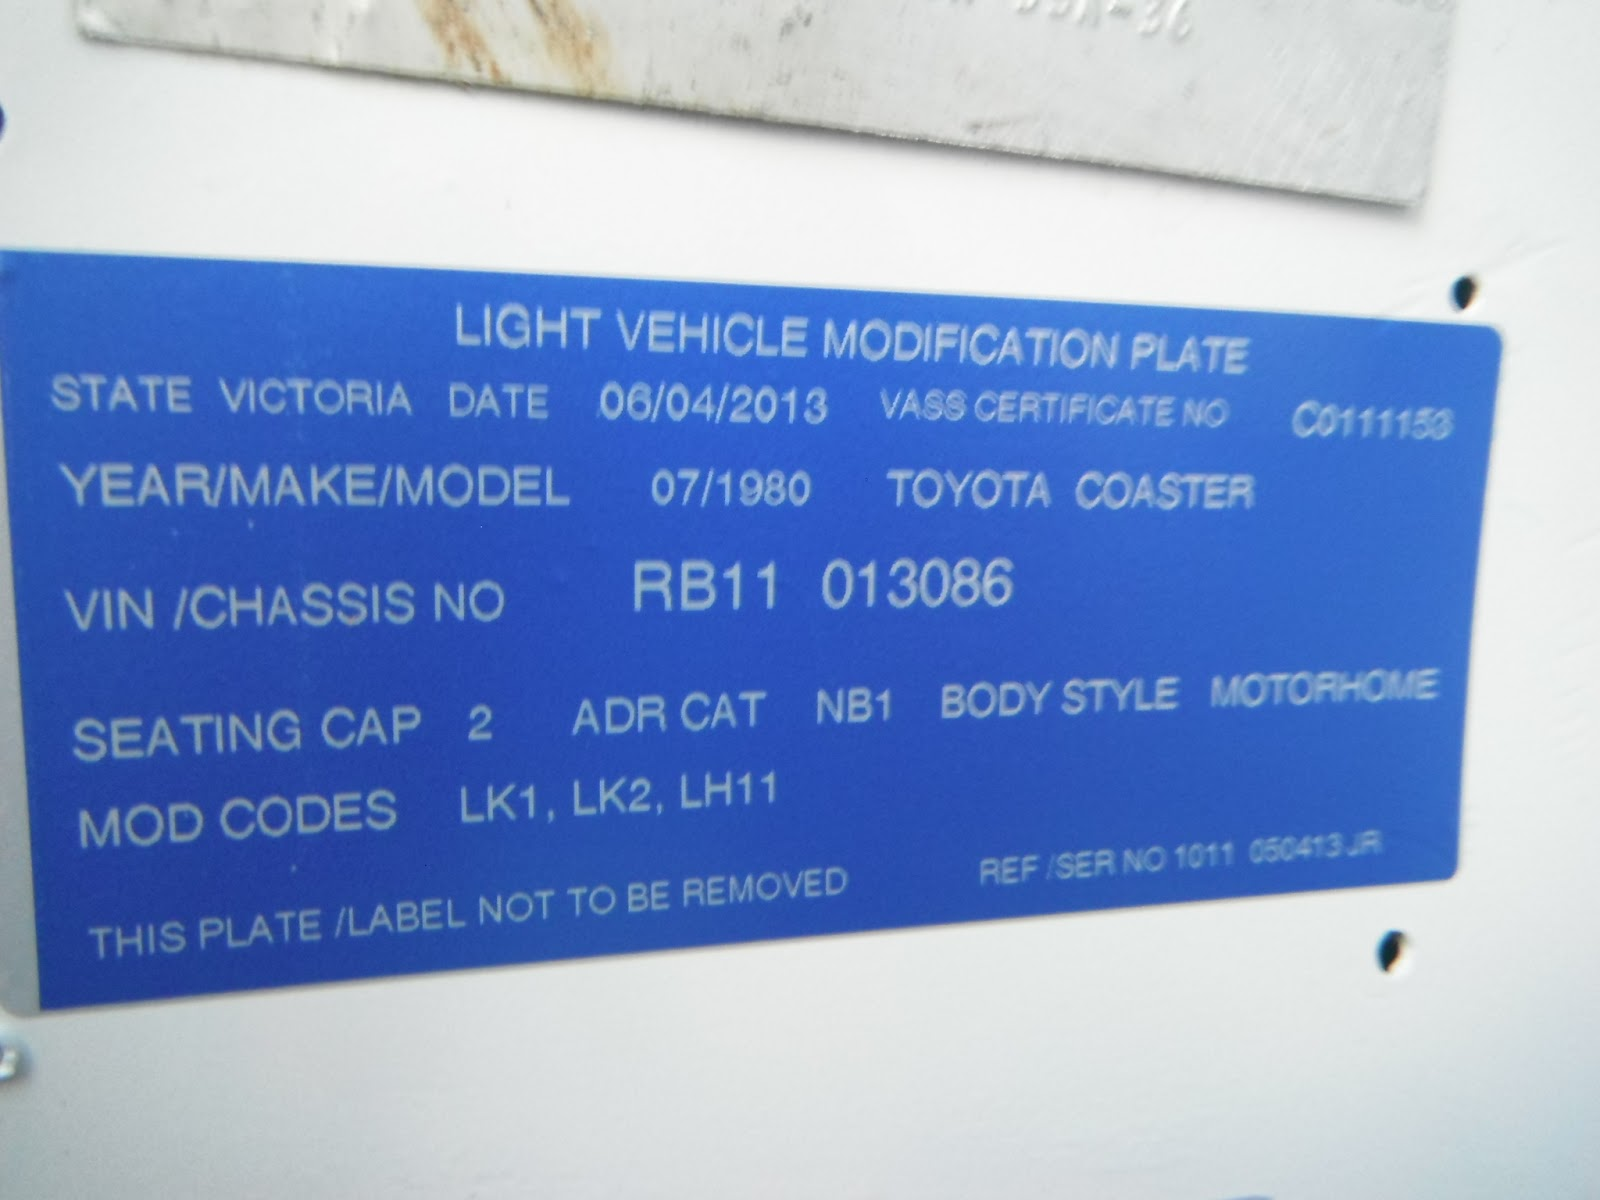 From Compliance Plate to Roadworthy Certificate to Registration